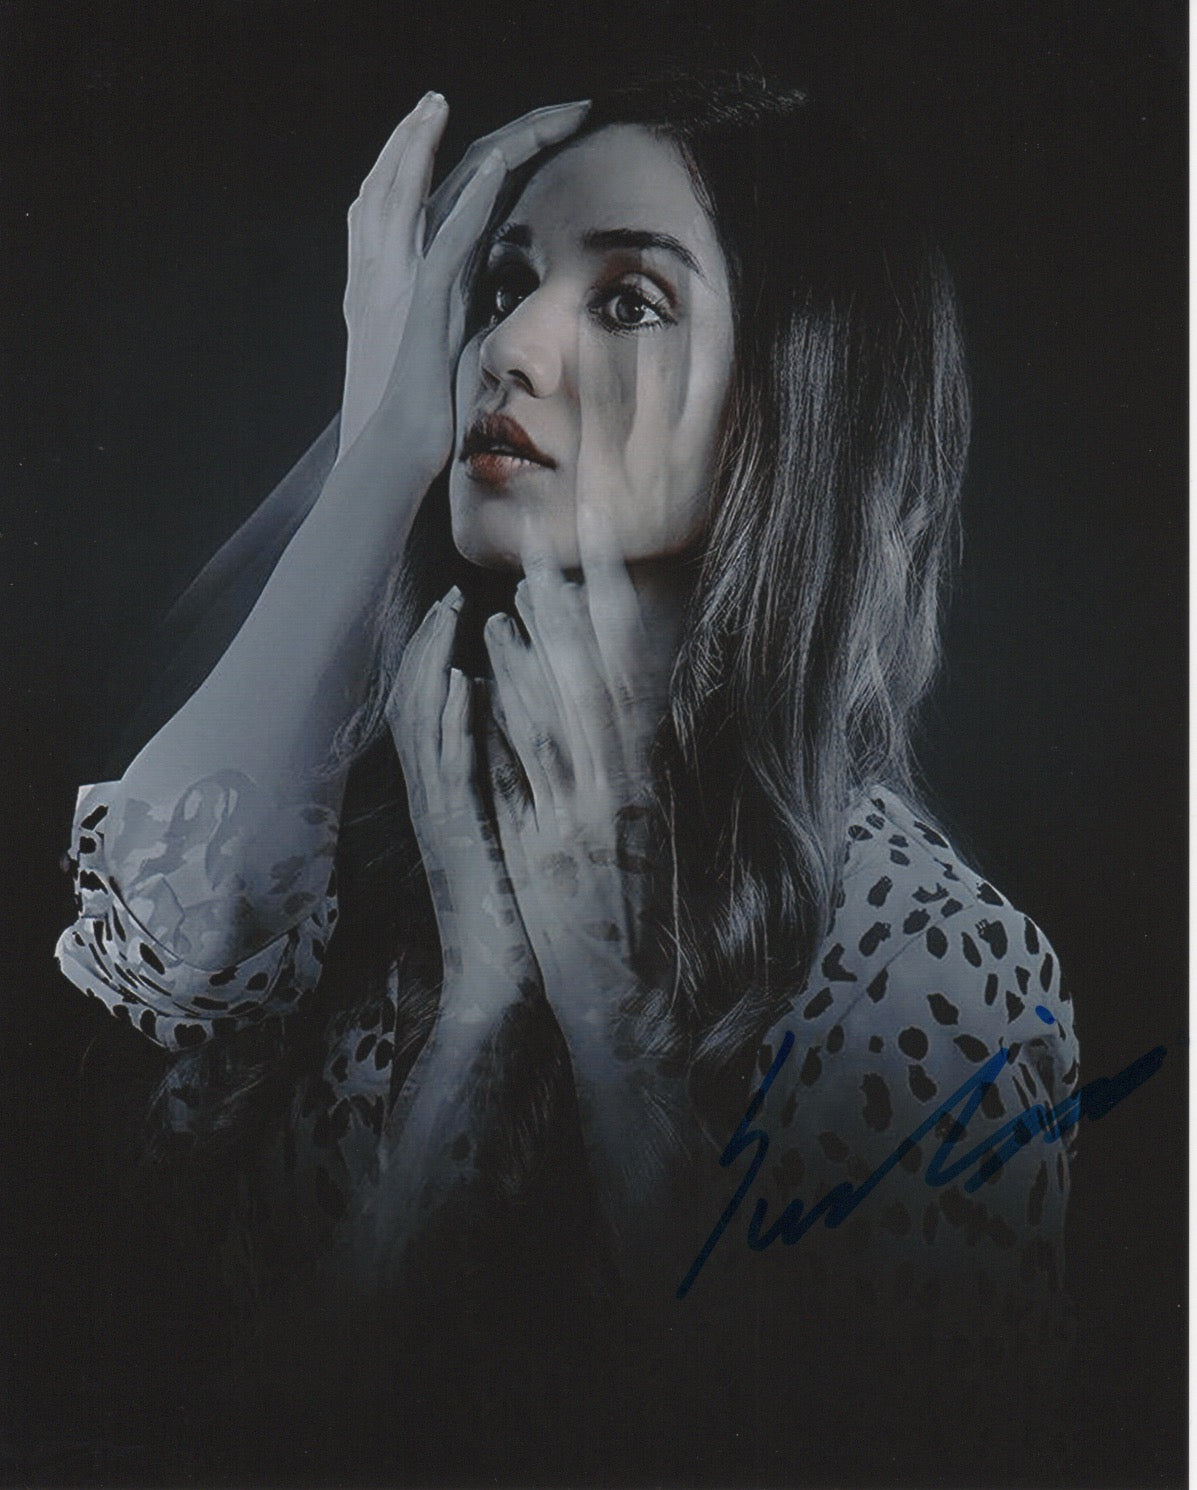 Summer Bishil Magicians Signed Autograph 8x10 Photo - Outlaw Hobbies Authentic Autographs